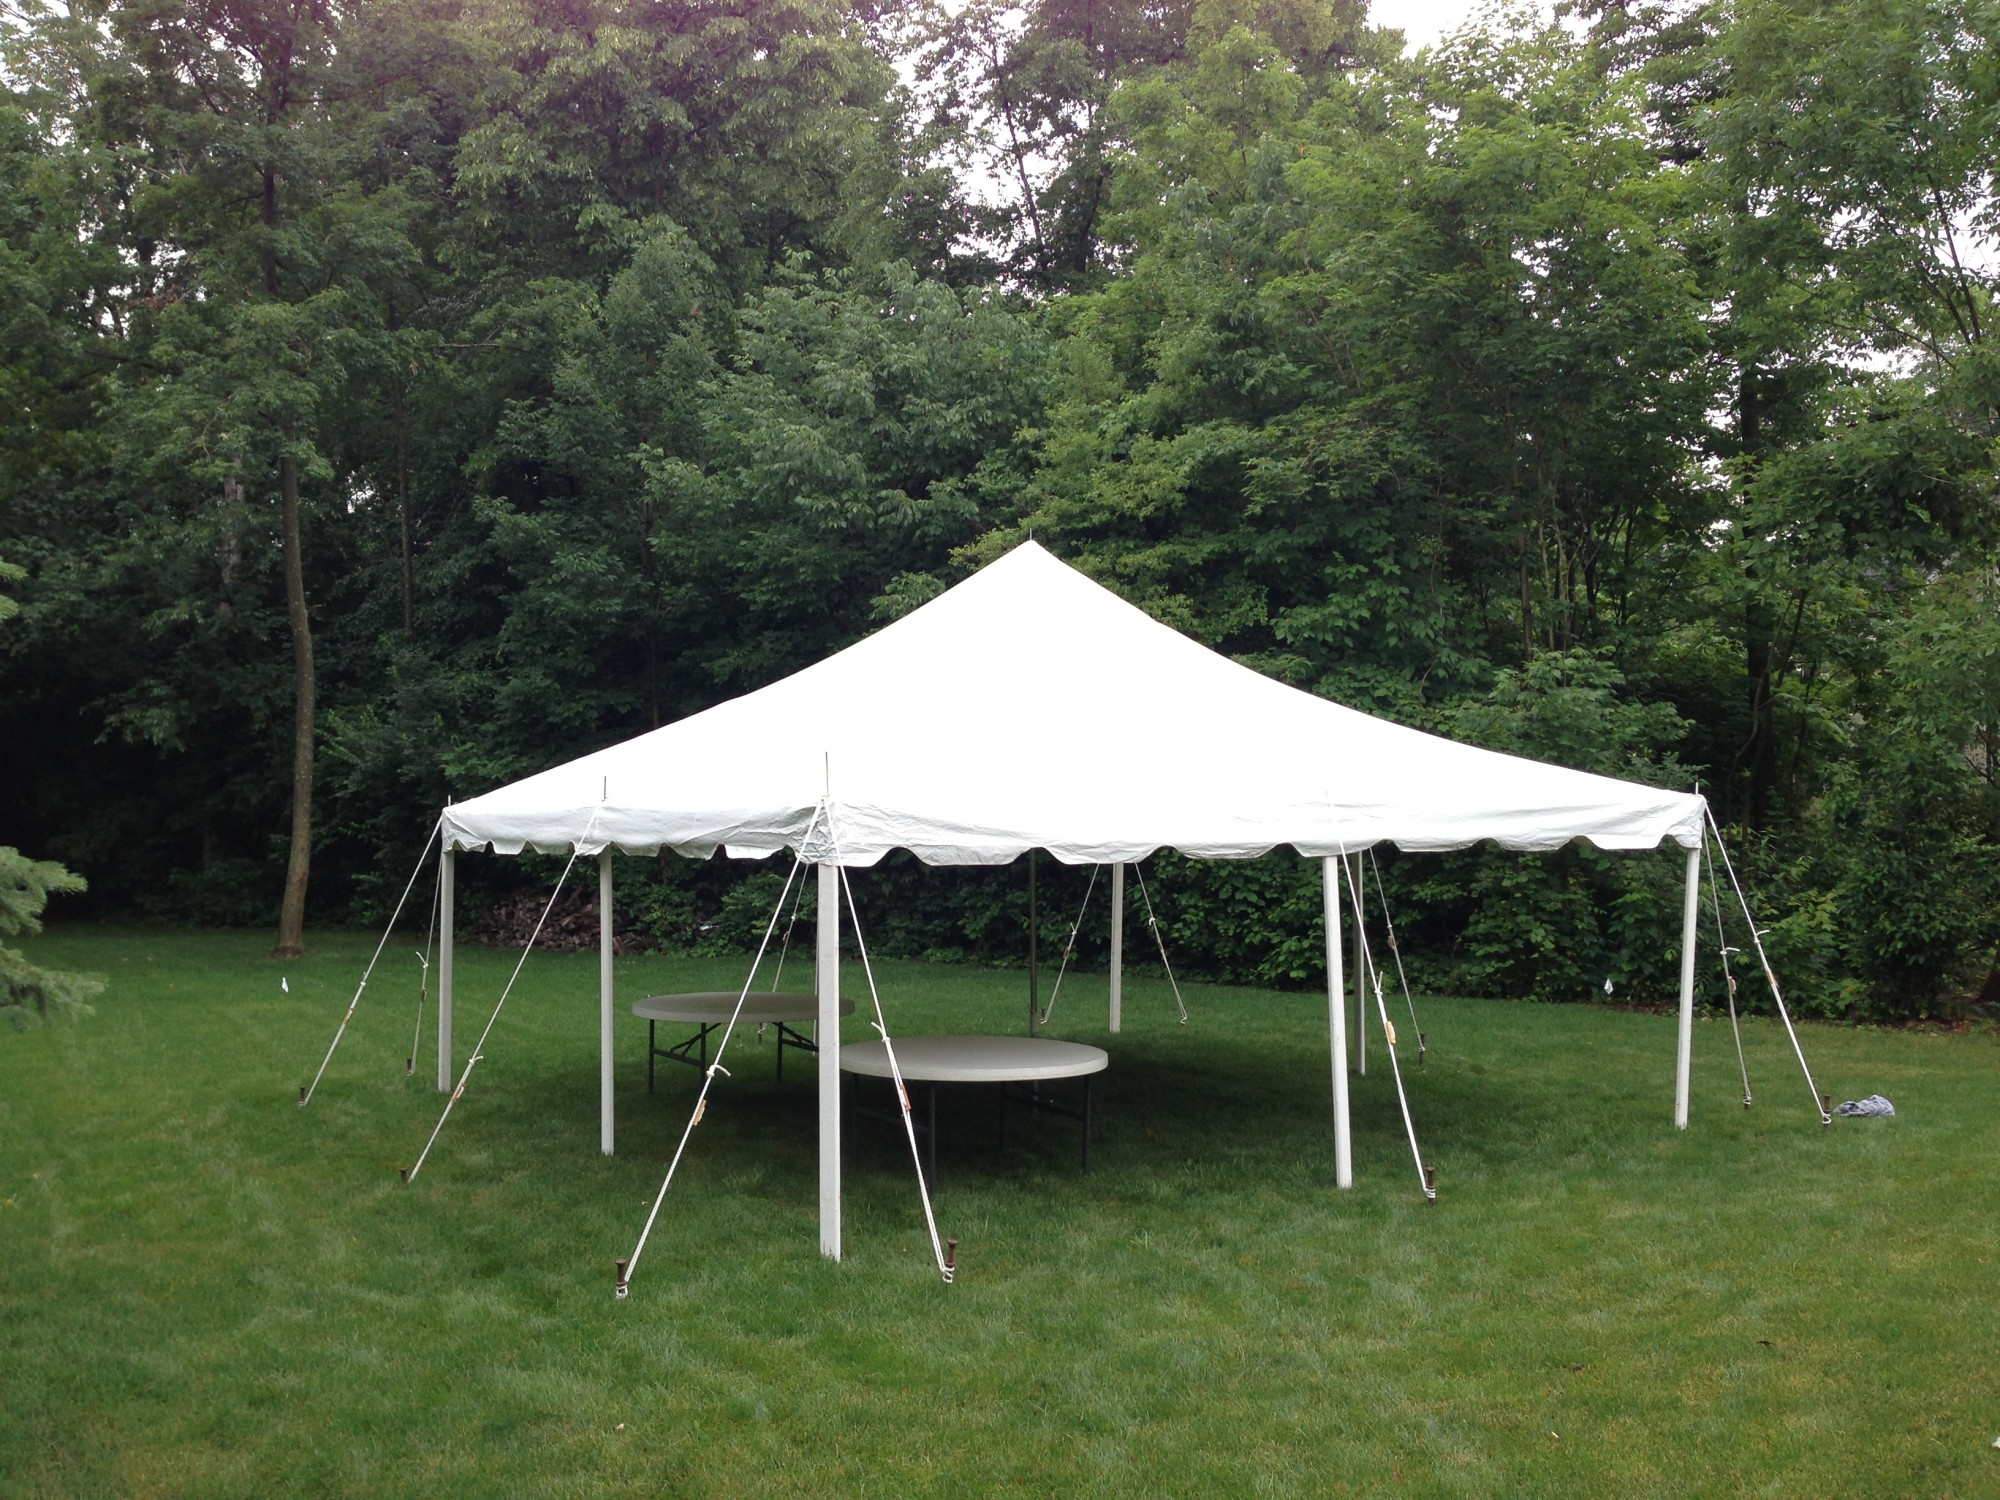 Graduation Parties come to a close - Prestige Tent Rental